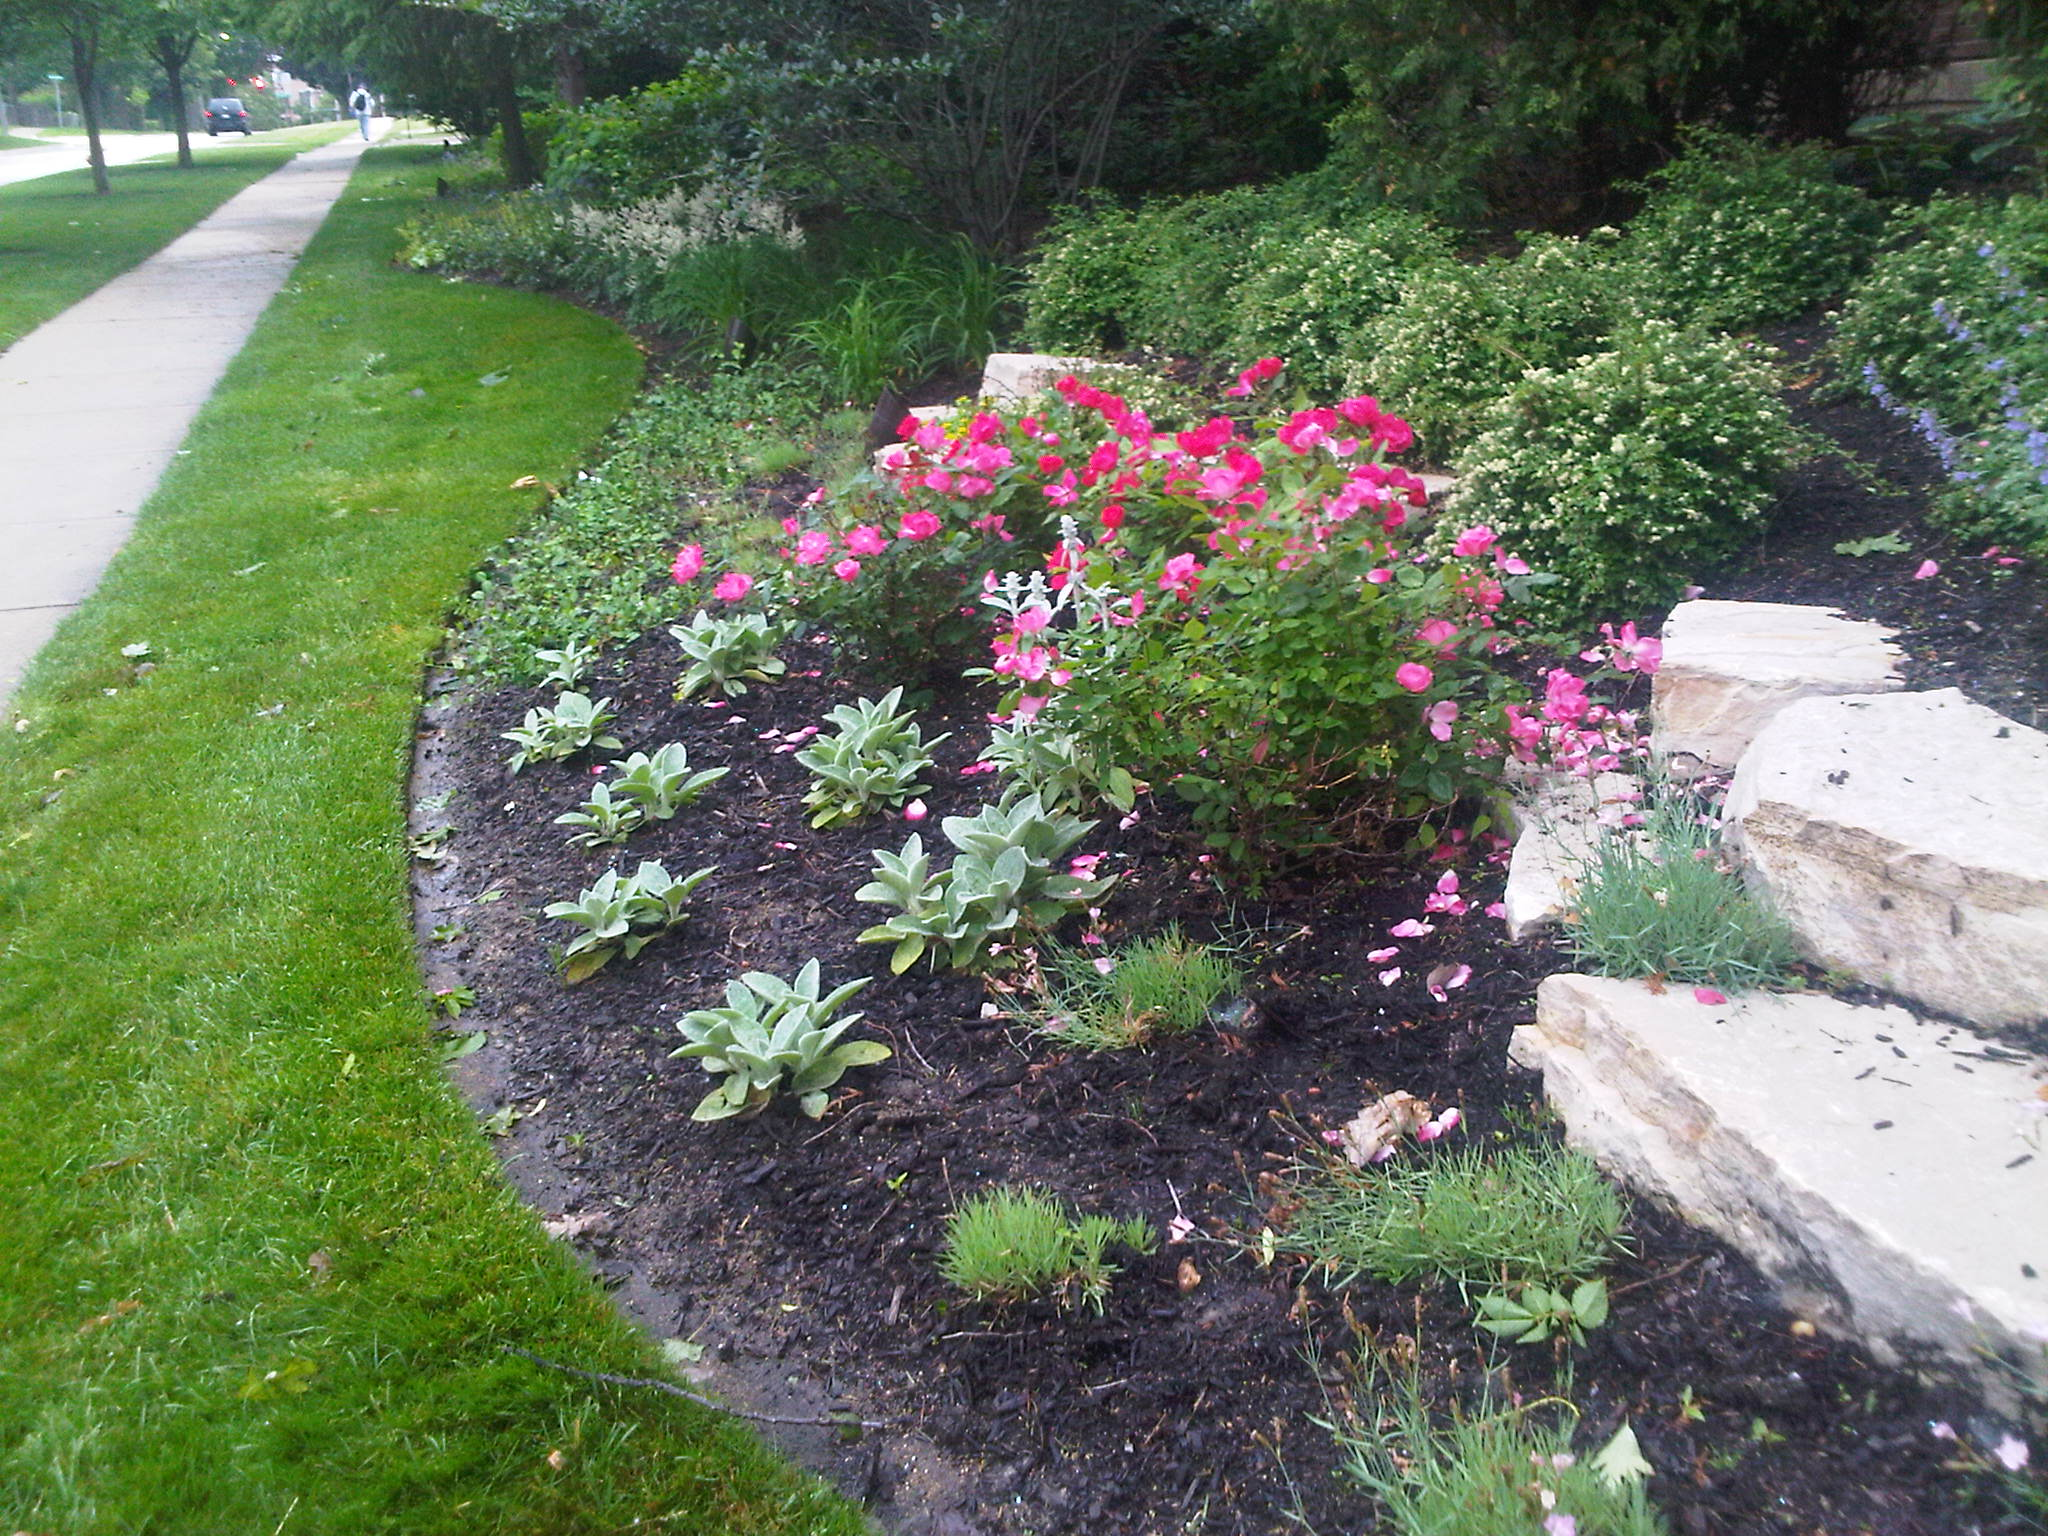 Landscaping services including top lawn care service in Northbrook, IL